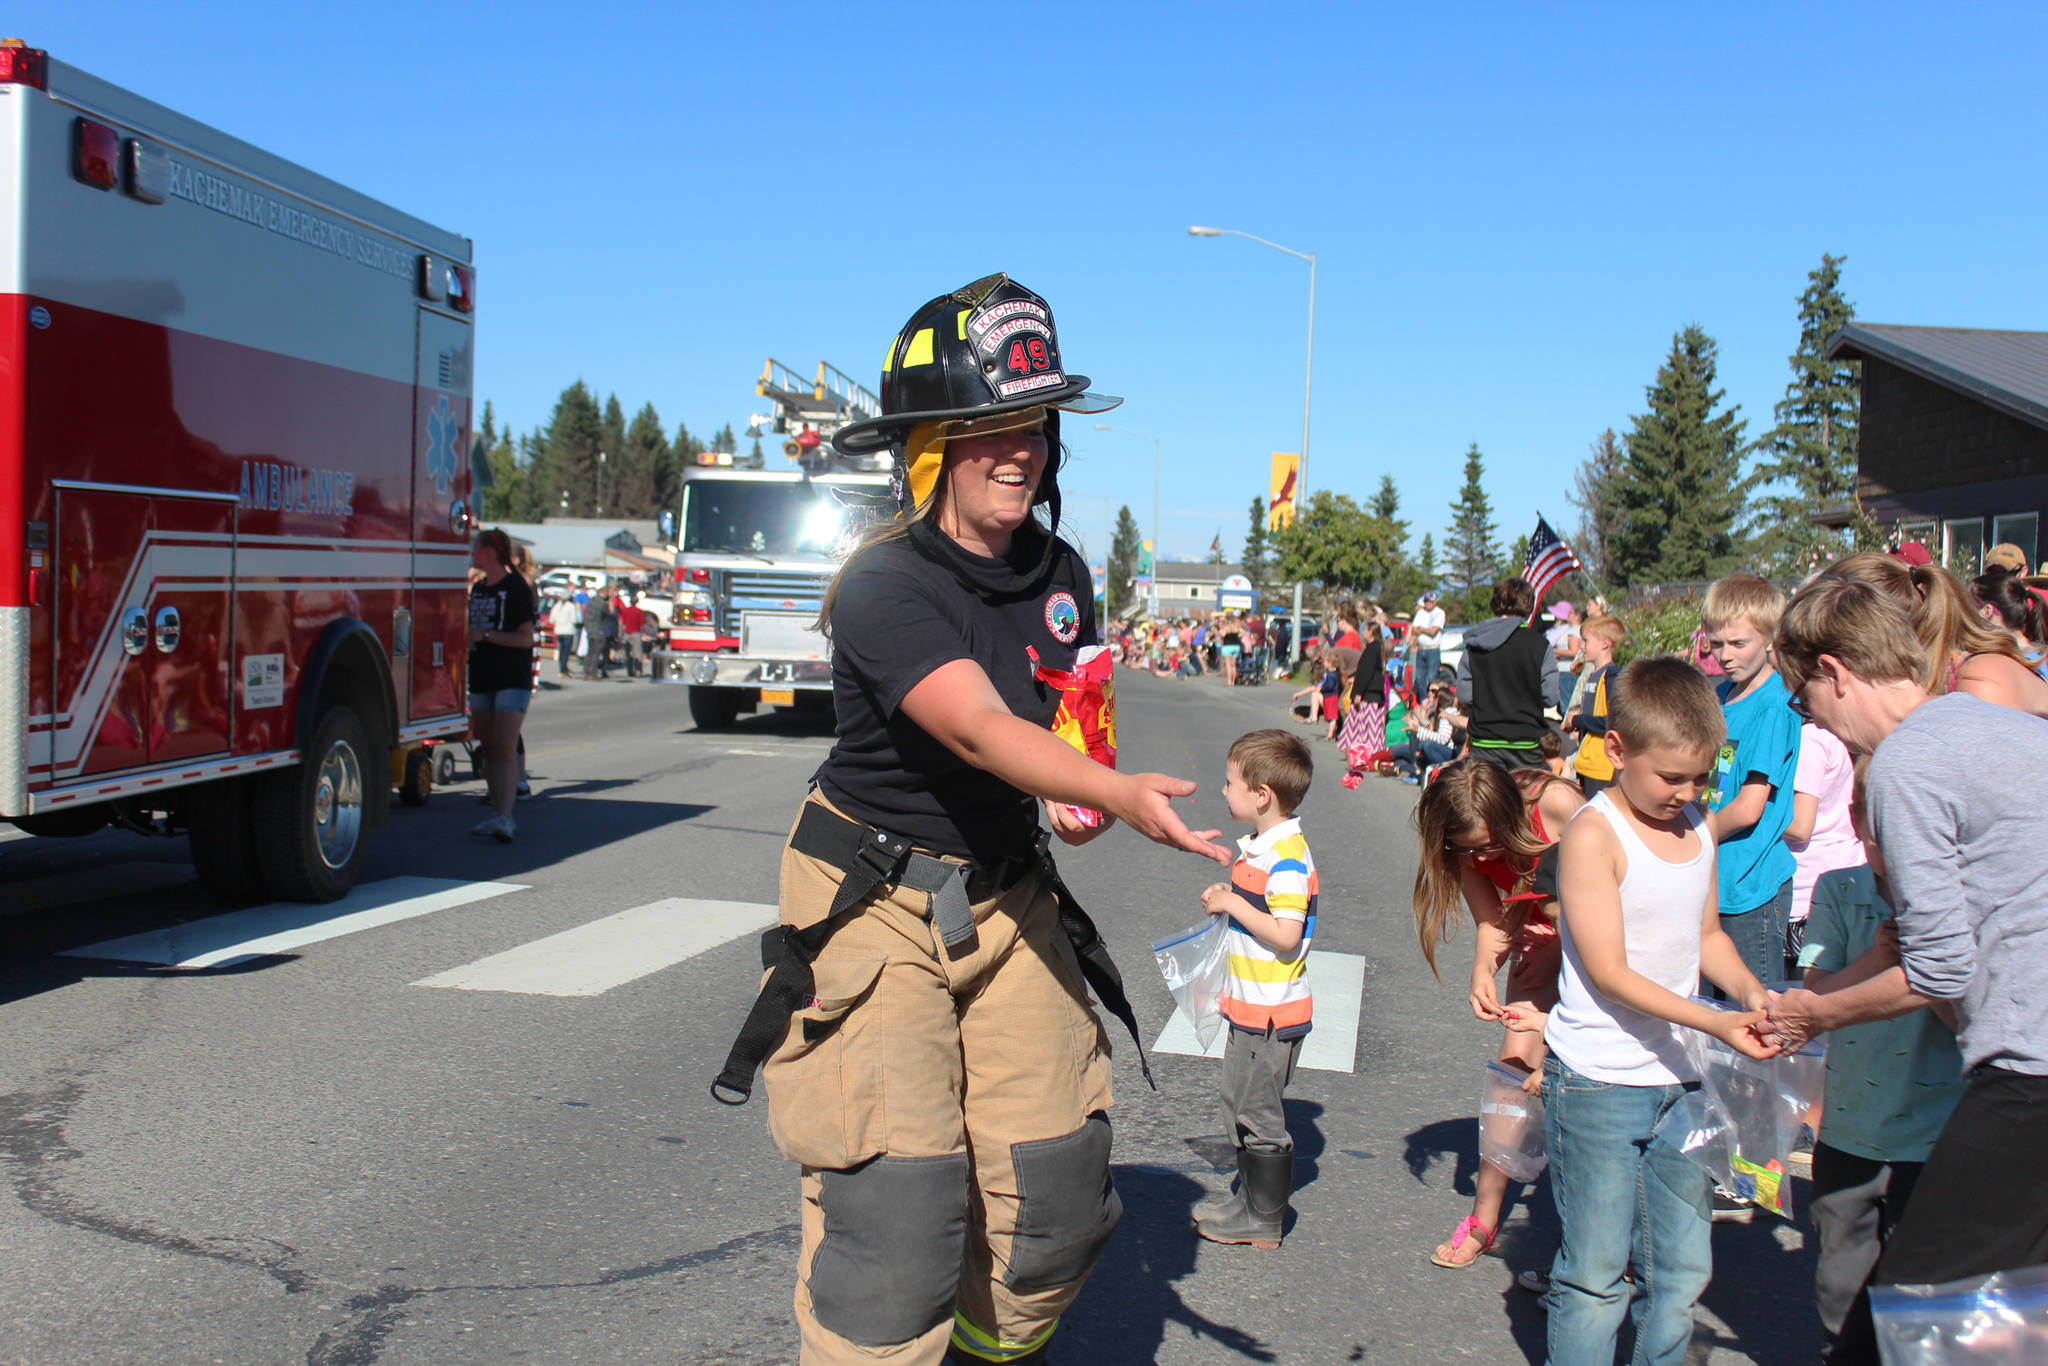 A member of Kachemak Emergency Services tosses candy to eager children along Pioneer Avenue during this year's Independence Day parade Wednesday, July 4, 2018 in Homer, Alaska. (Photo by Megan Pacer/Homer News)